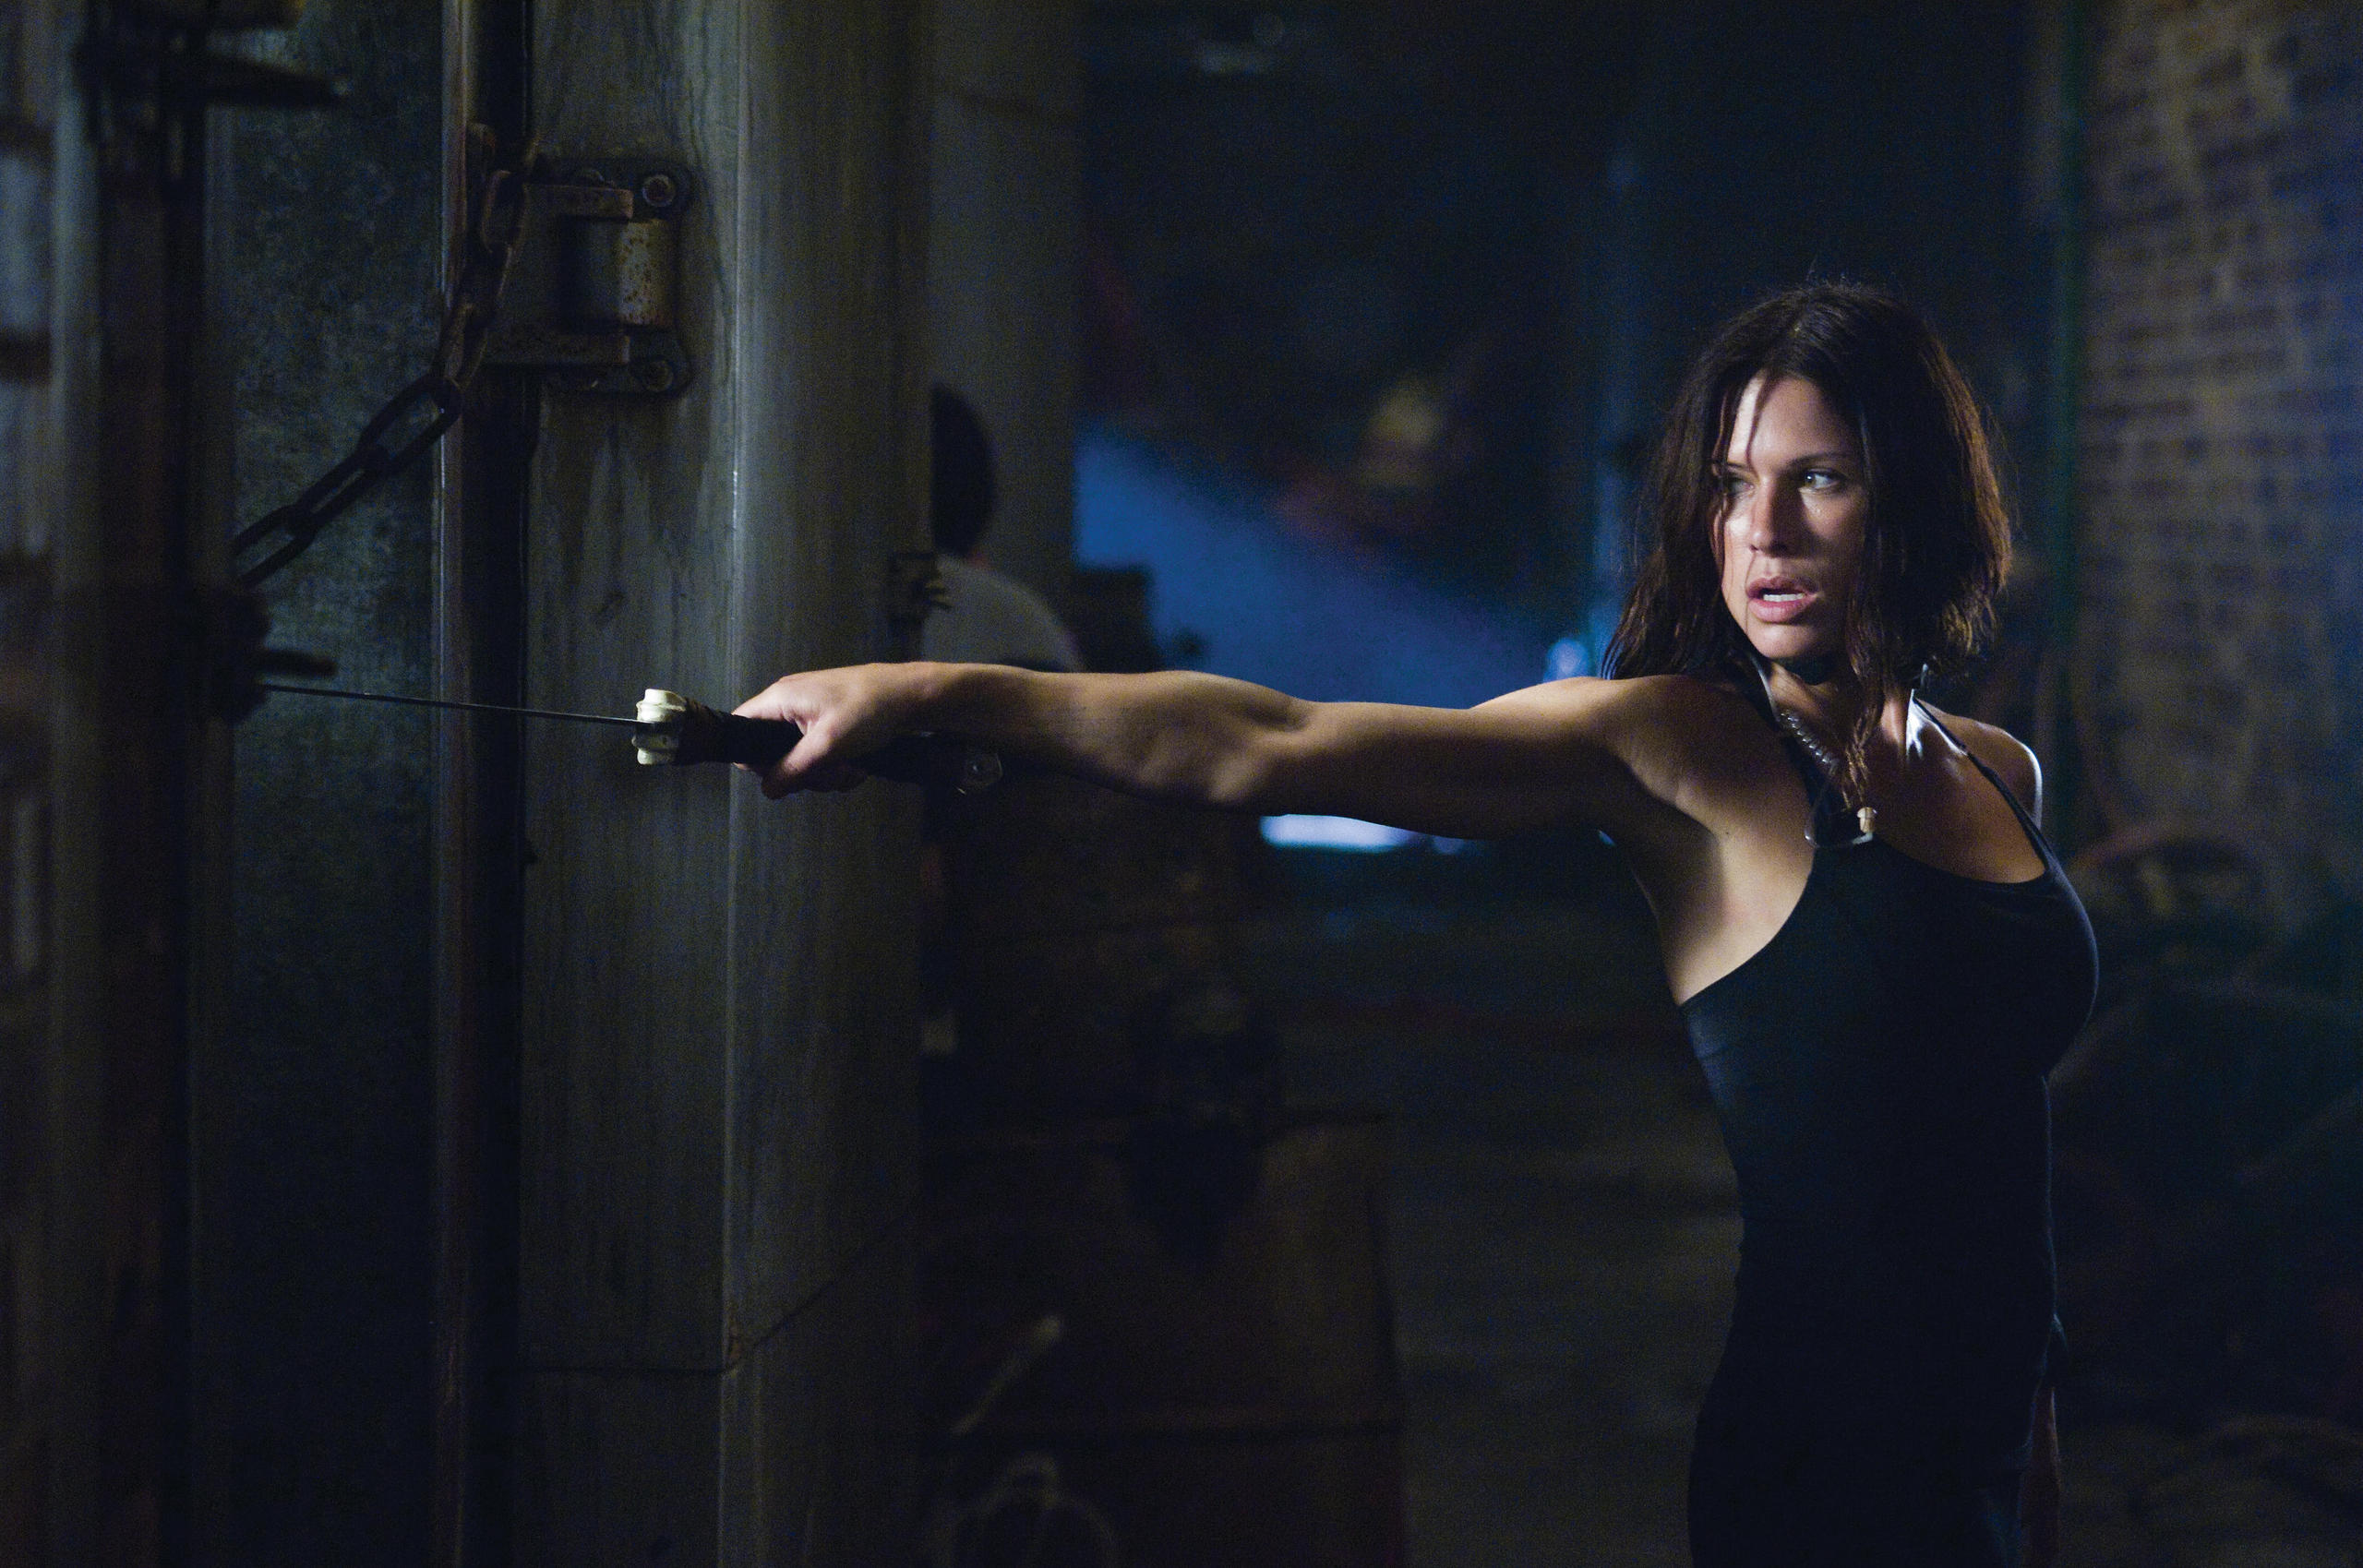 A tough kick-ass Rhona Mitra in Doomsday (2008)